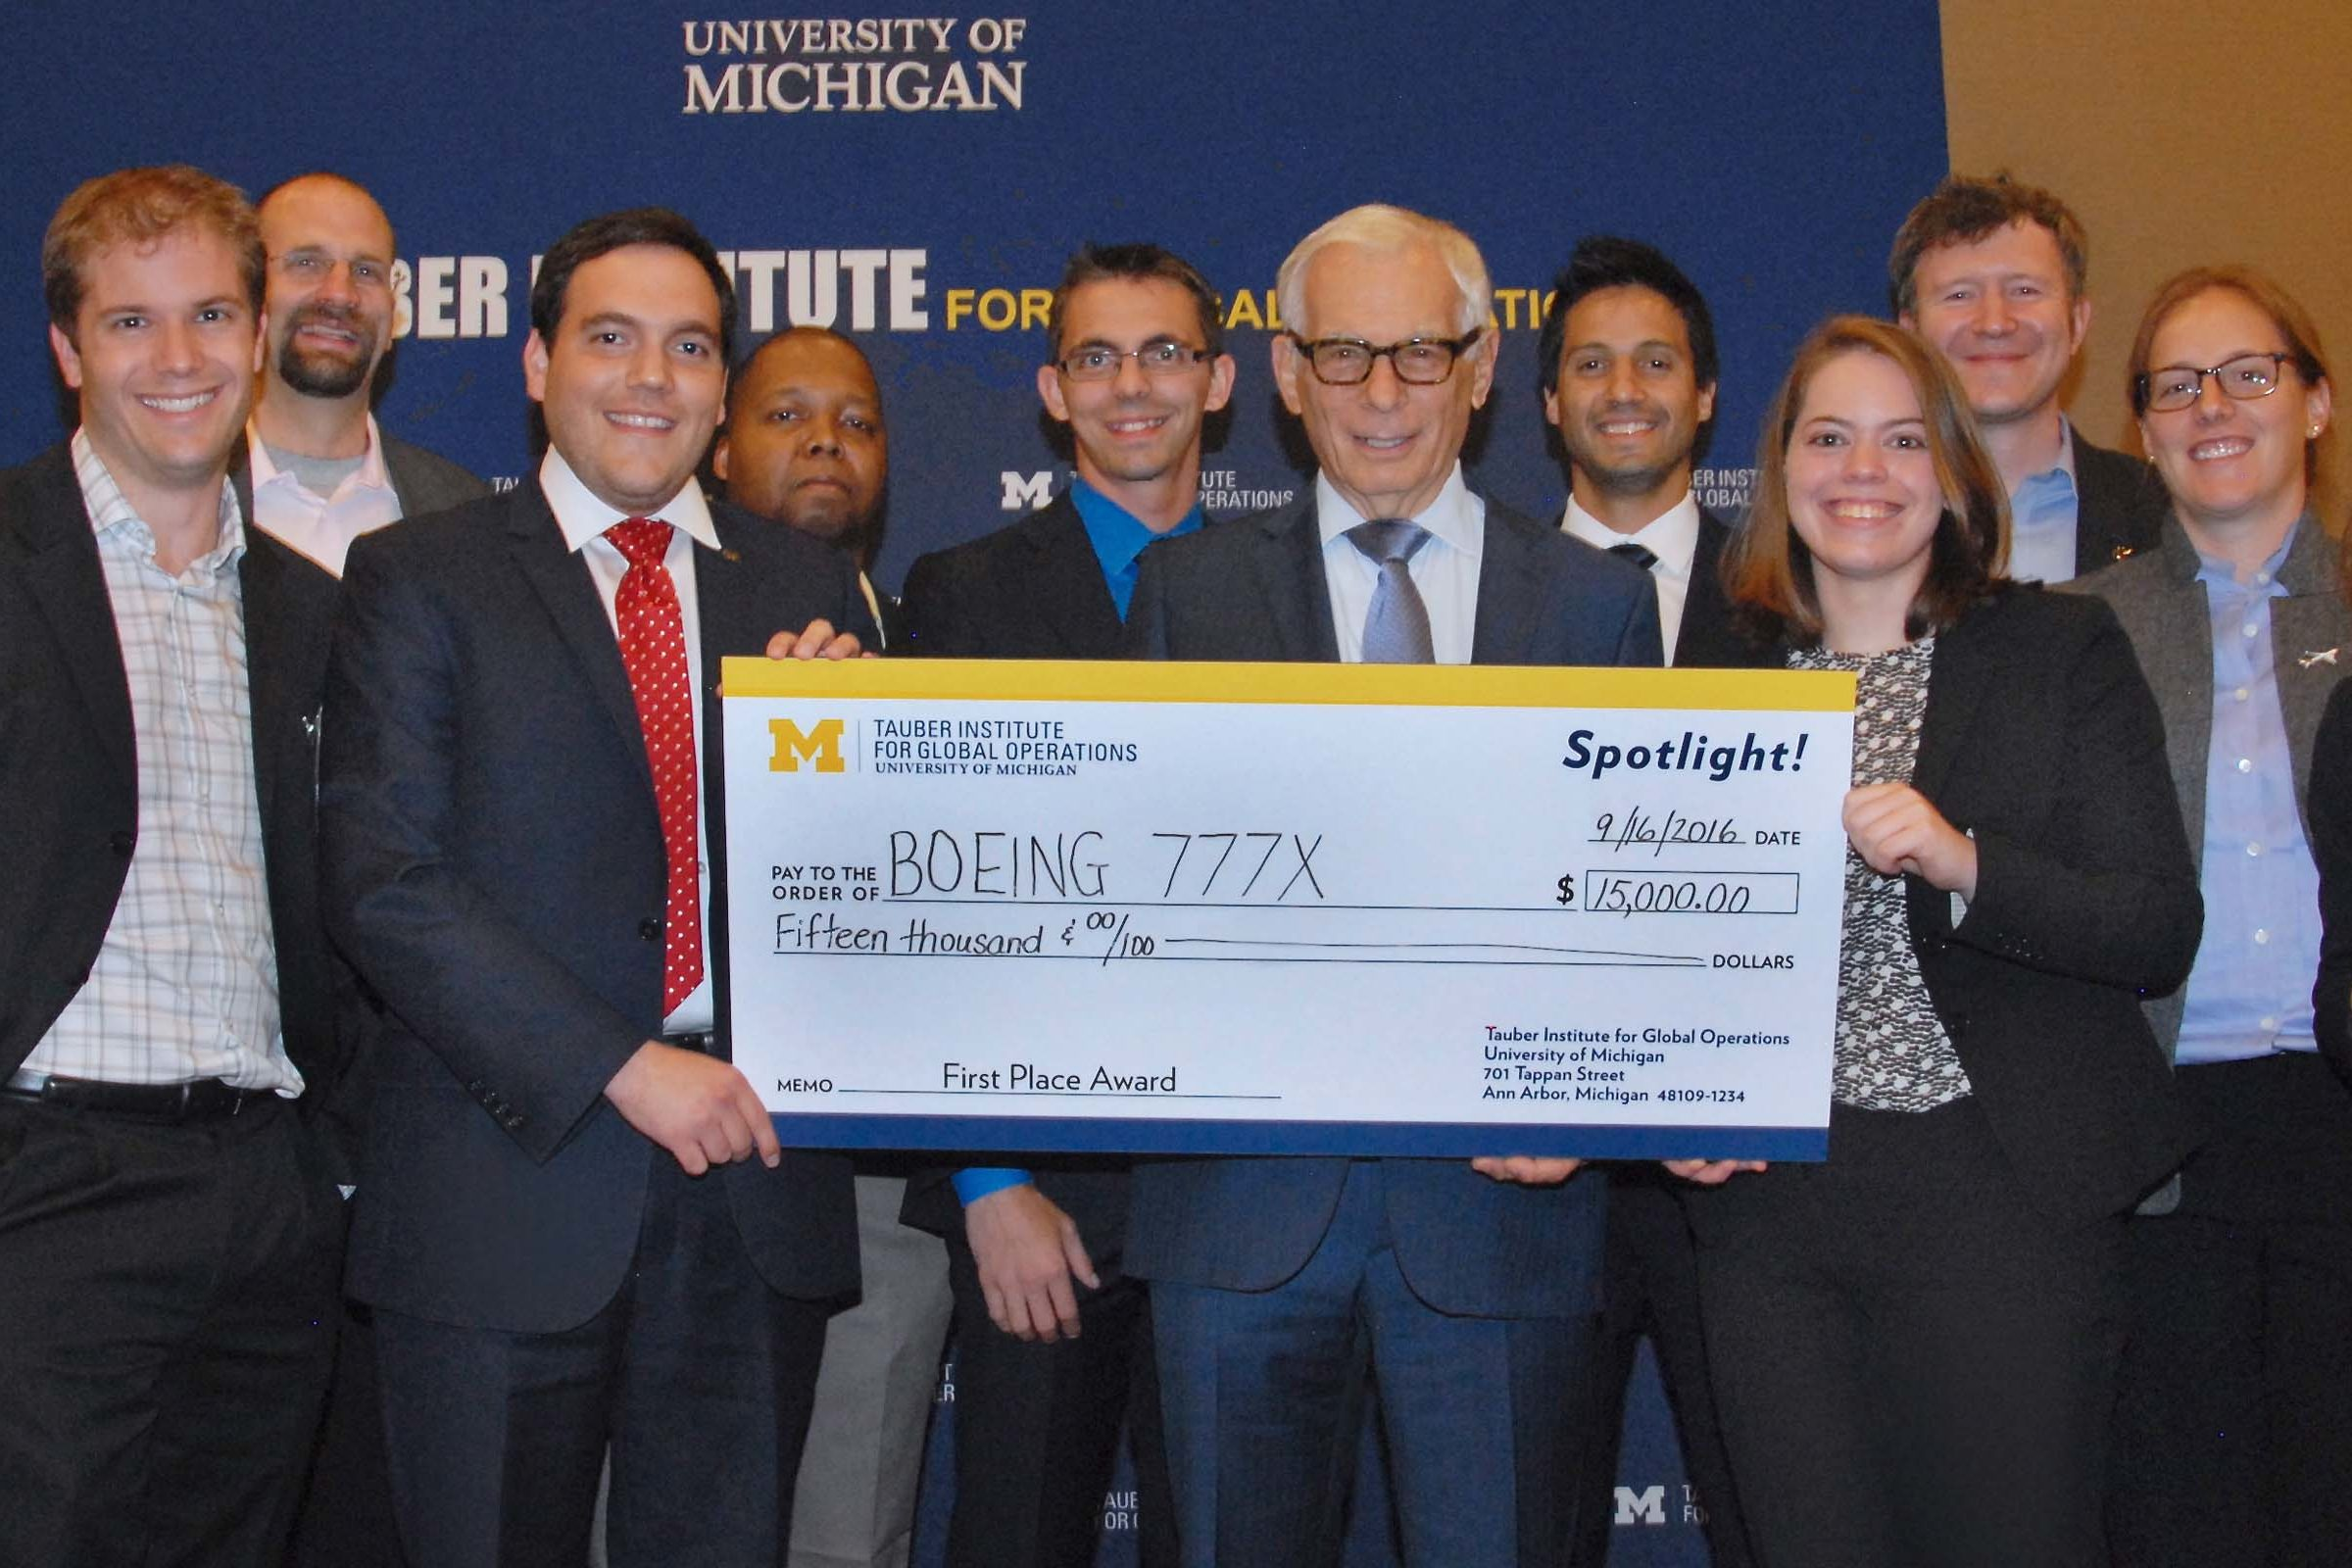 A group of people pose for a photo with a large check.